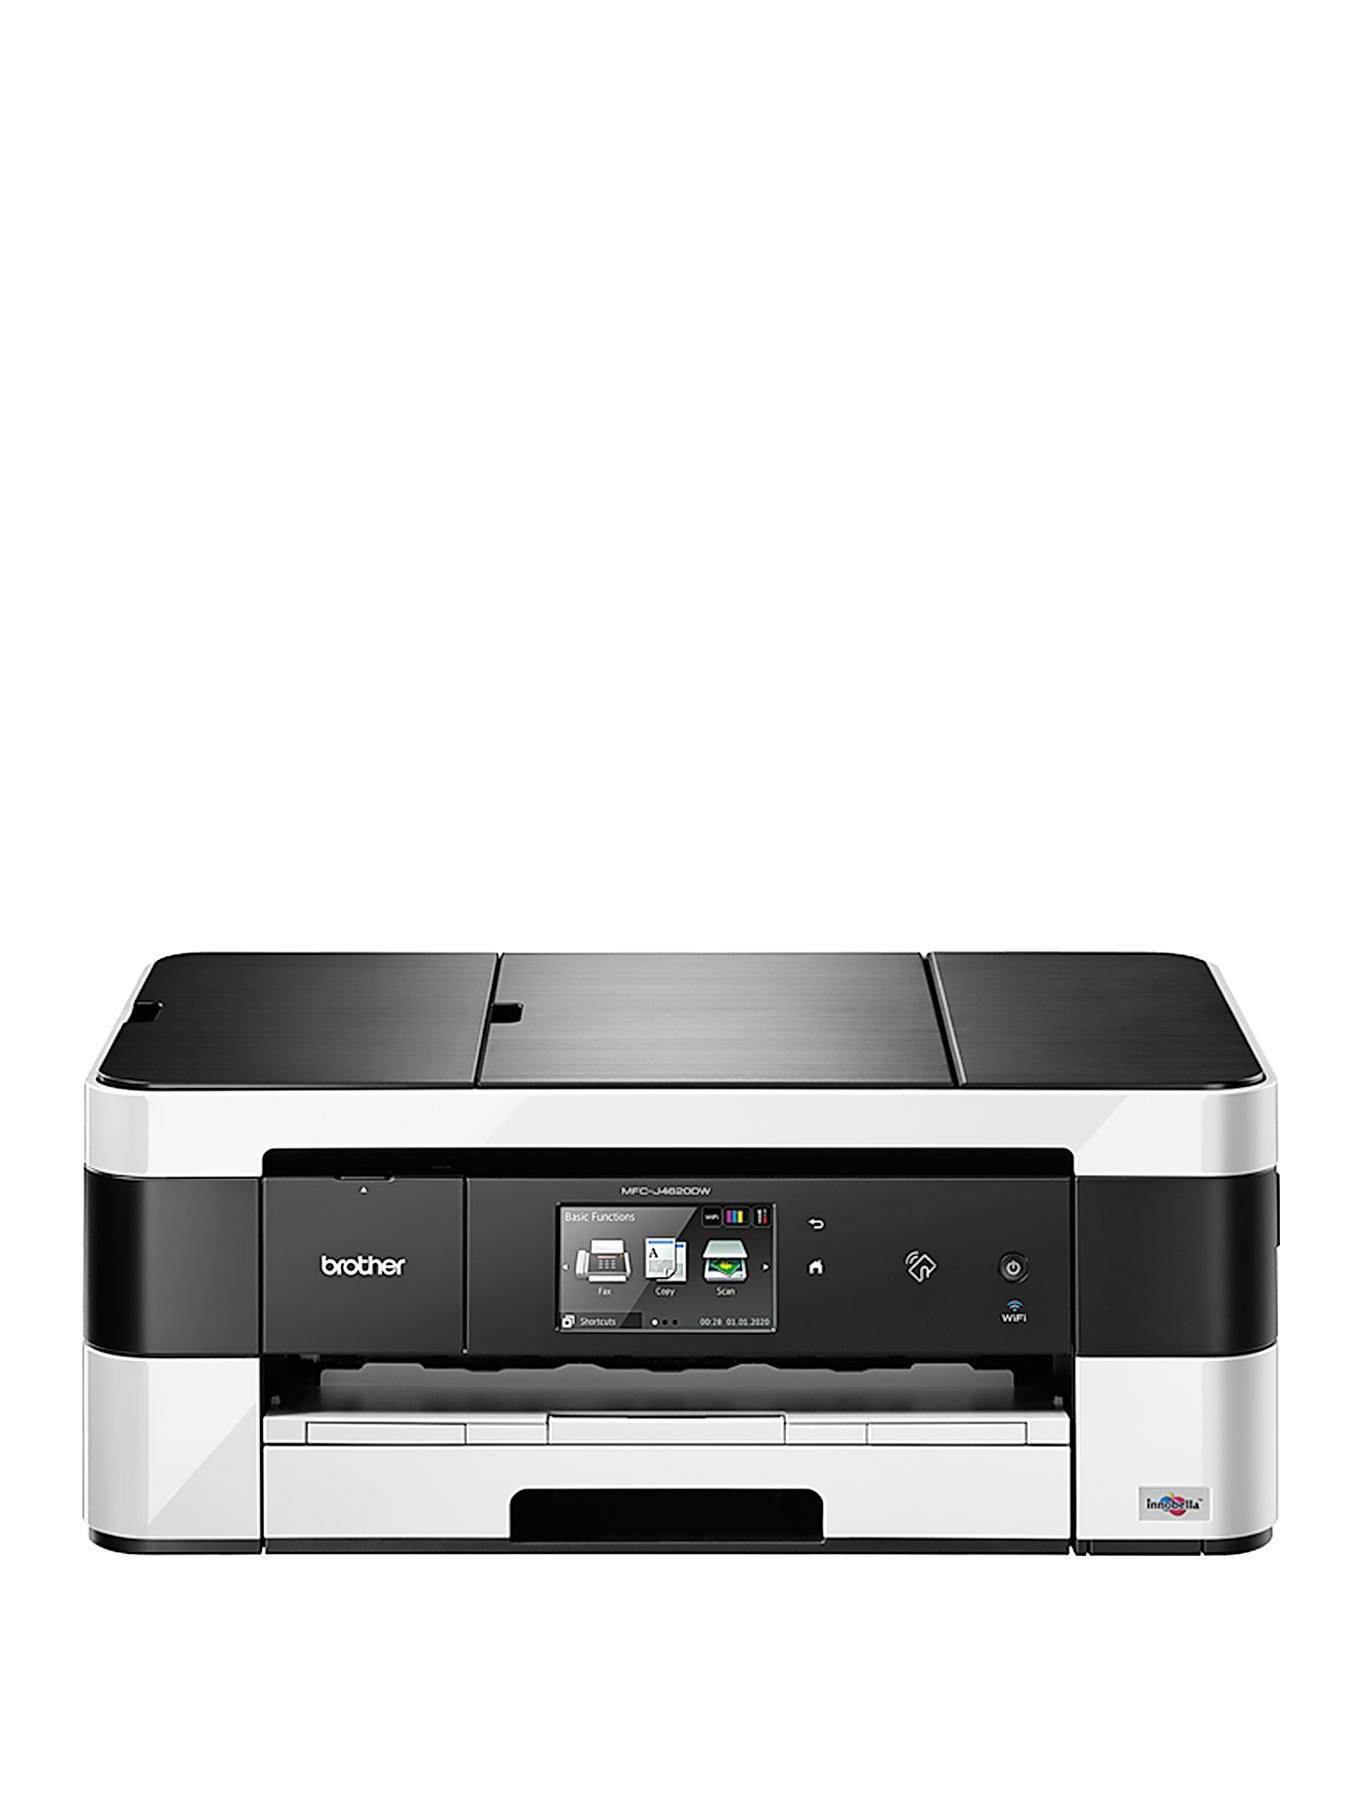 Brother MFC-J4625DW Inkjet AIO with Fax and A3 Print - Black White